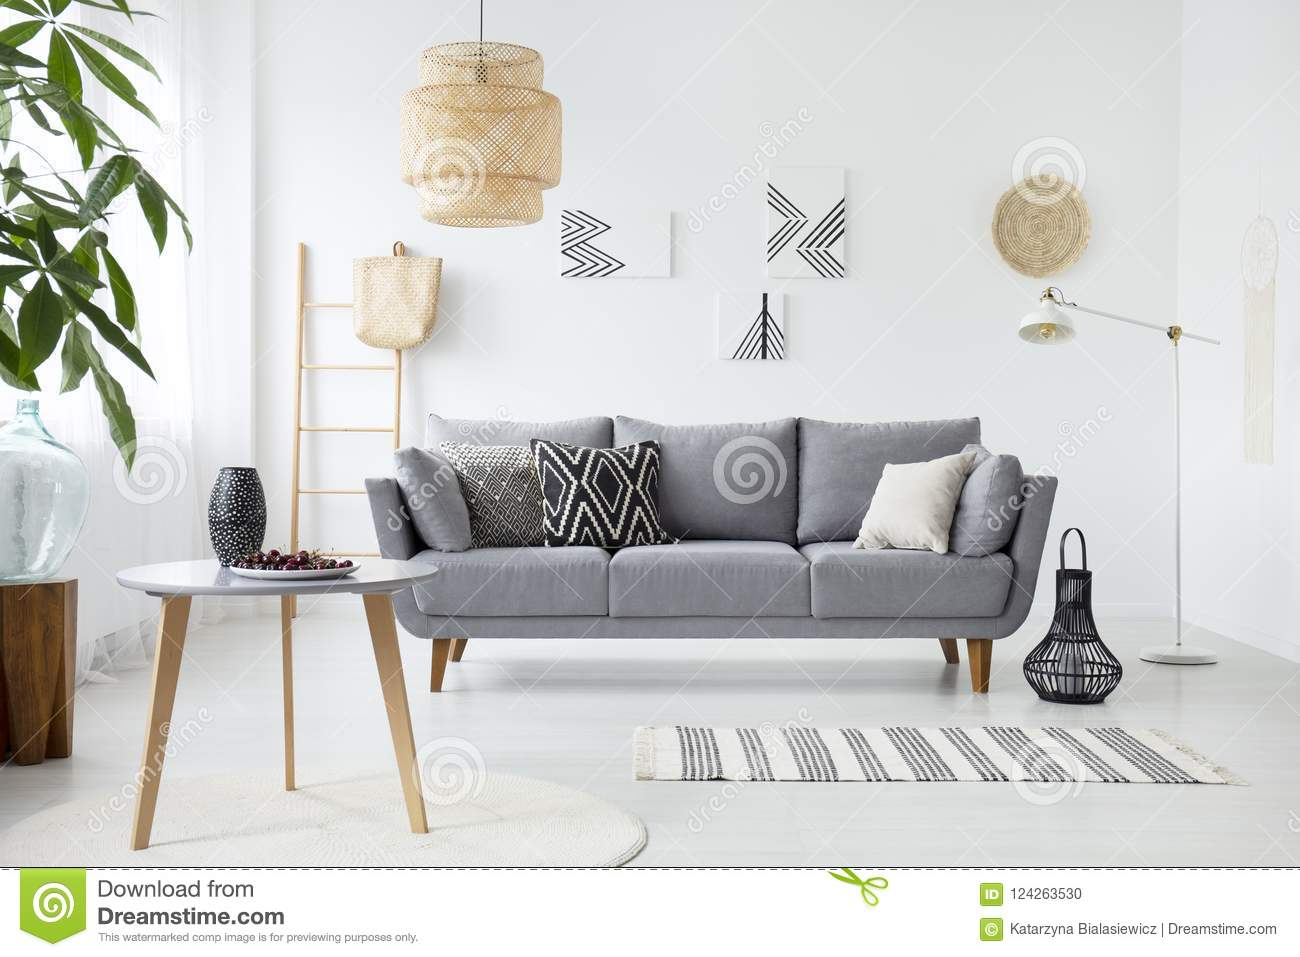 Real Photo Of A Simple Living Room Interior With Cushions